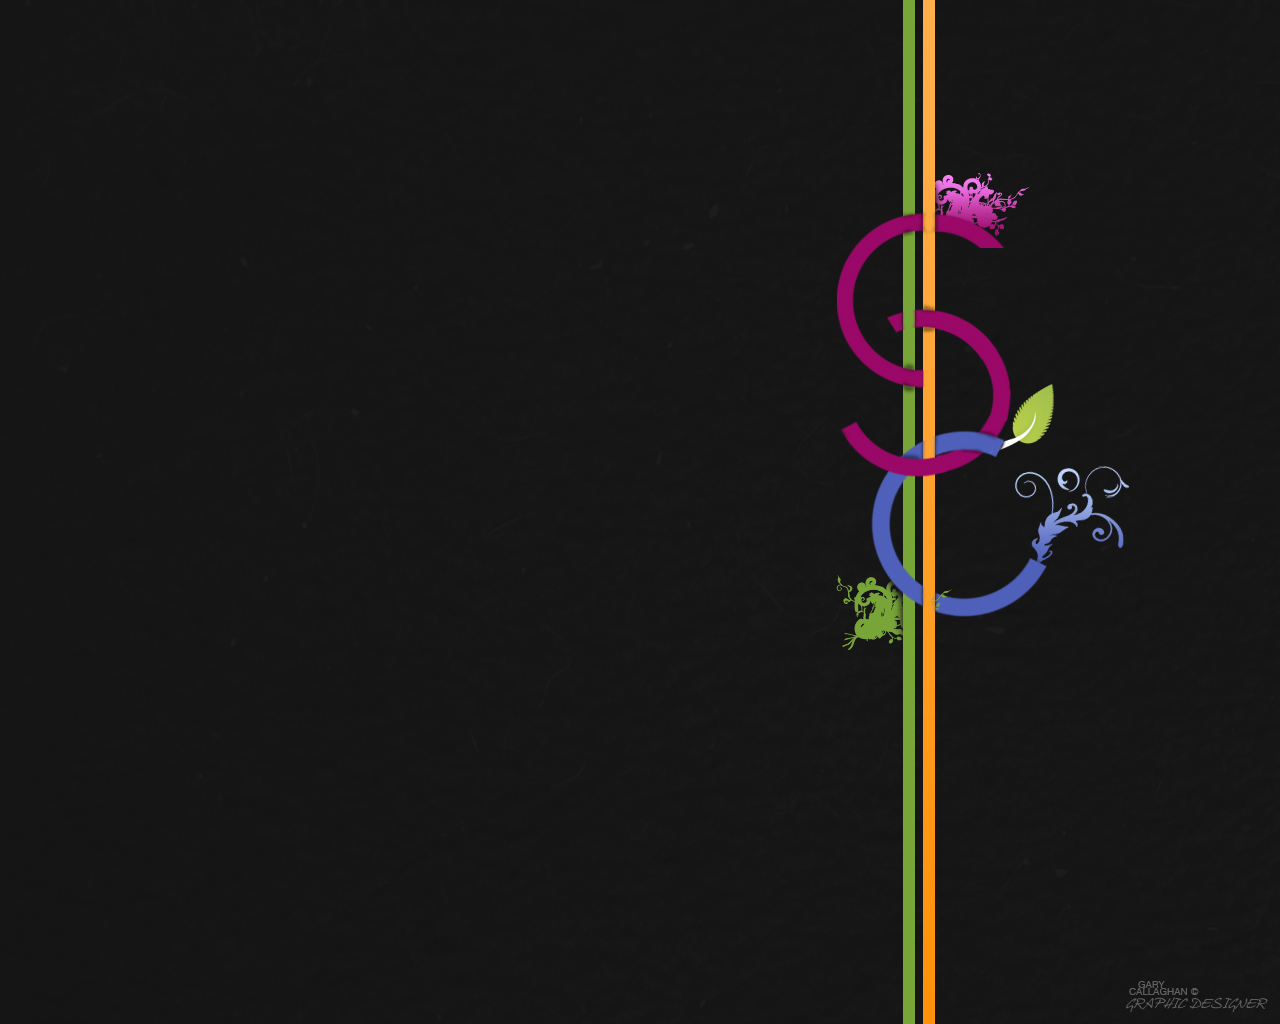 Love Graphic Design Wallpaper : Graphic Designer Wallpaper by c-GFX on DeviantArt